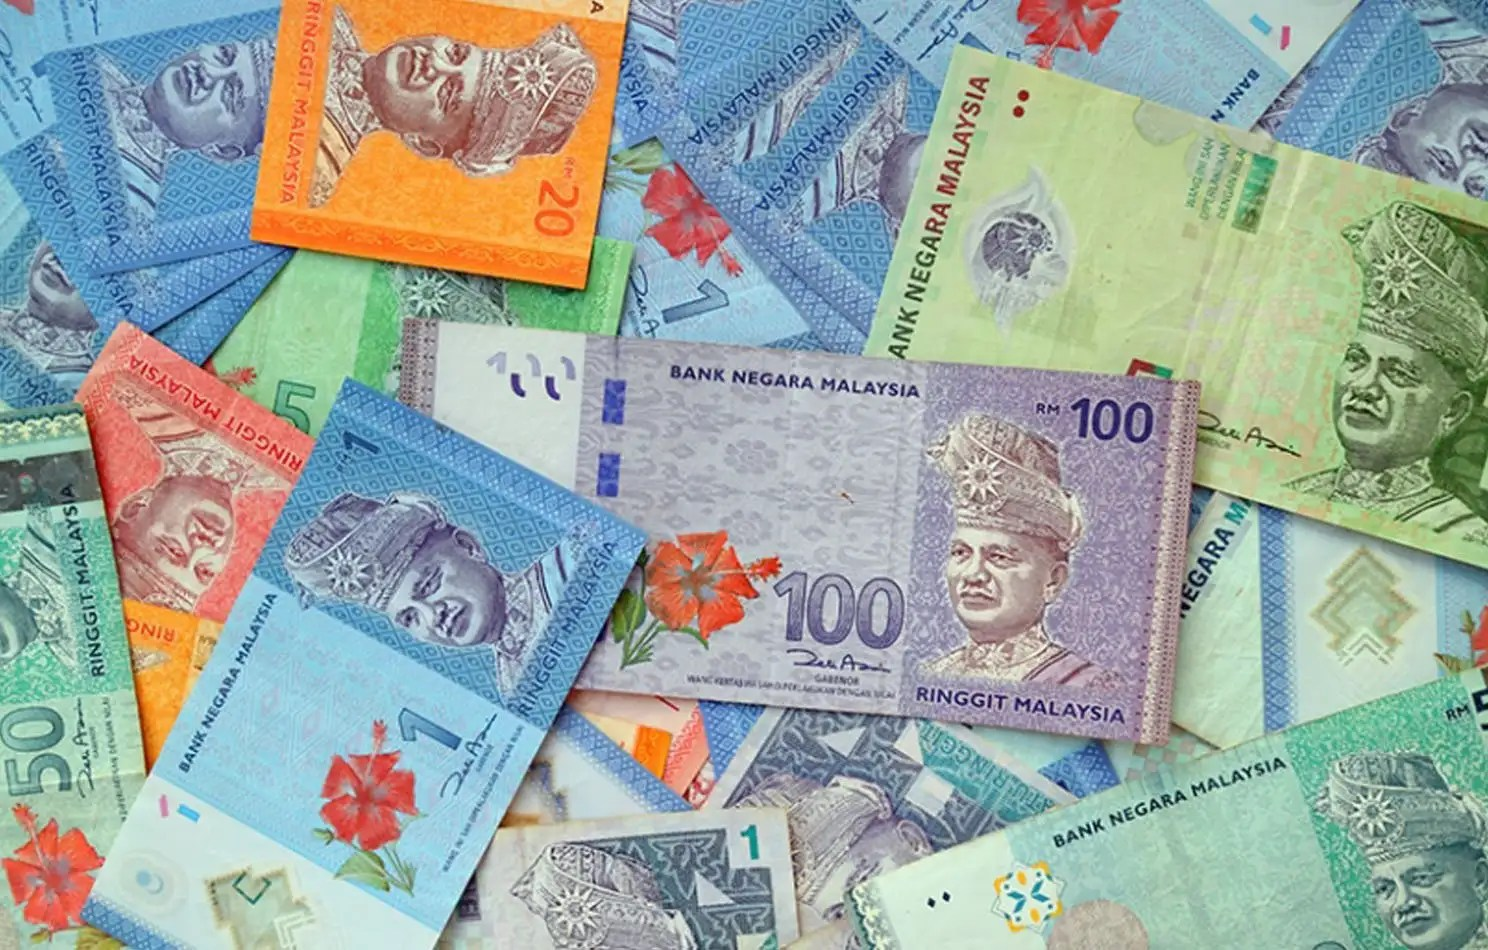 Insight Into The Financial And Banking Services In Malaysia